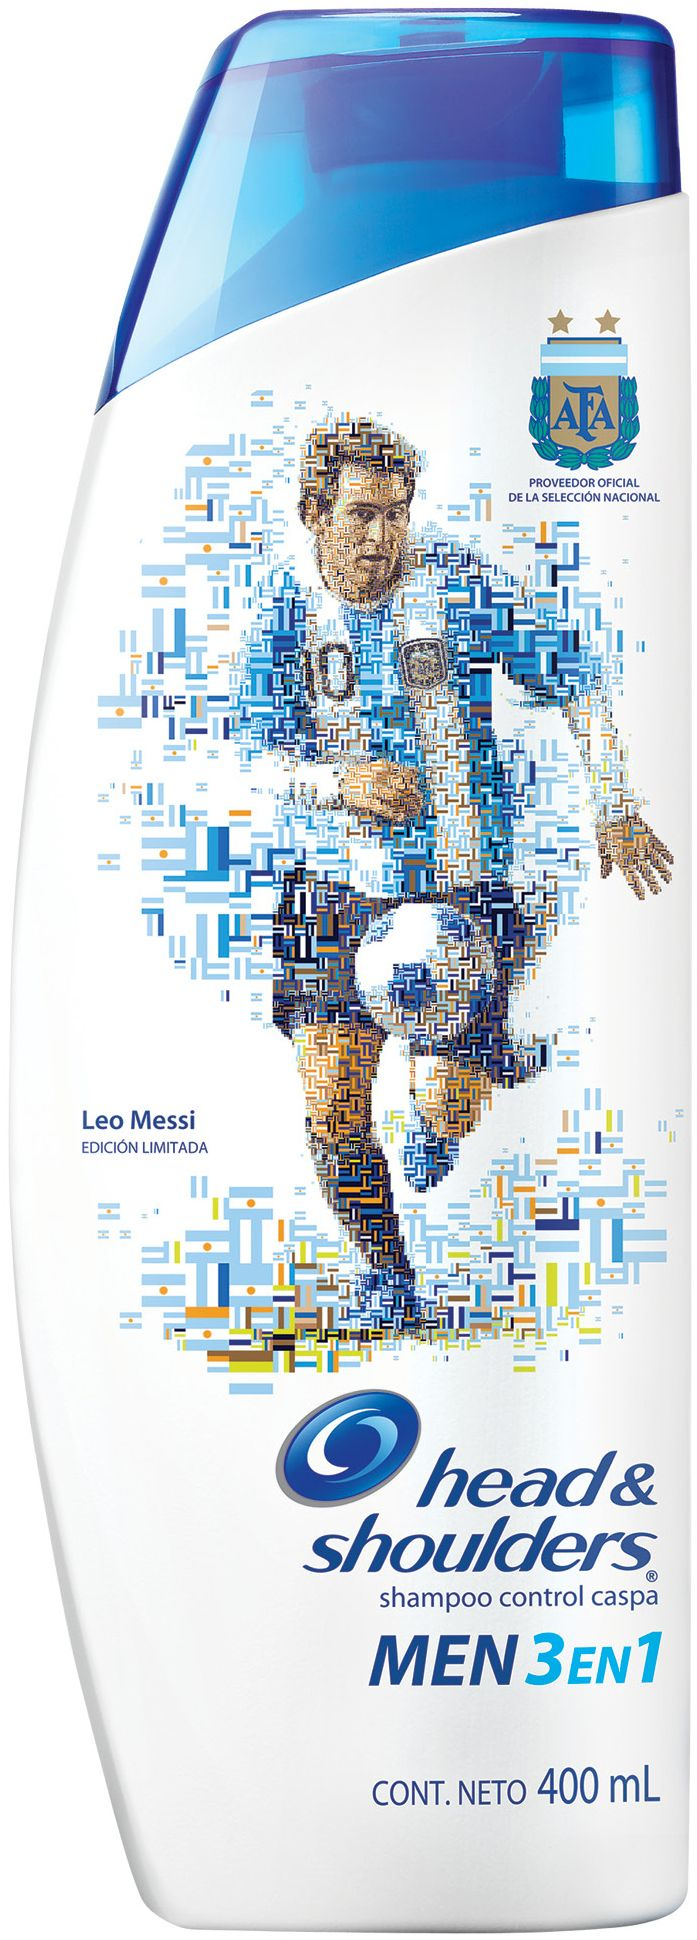 Head & Shoulders: World Cup Limited Edition Packaging #illustation #packaging #Charis Tsevis